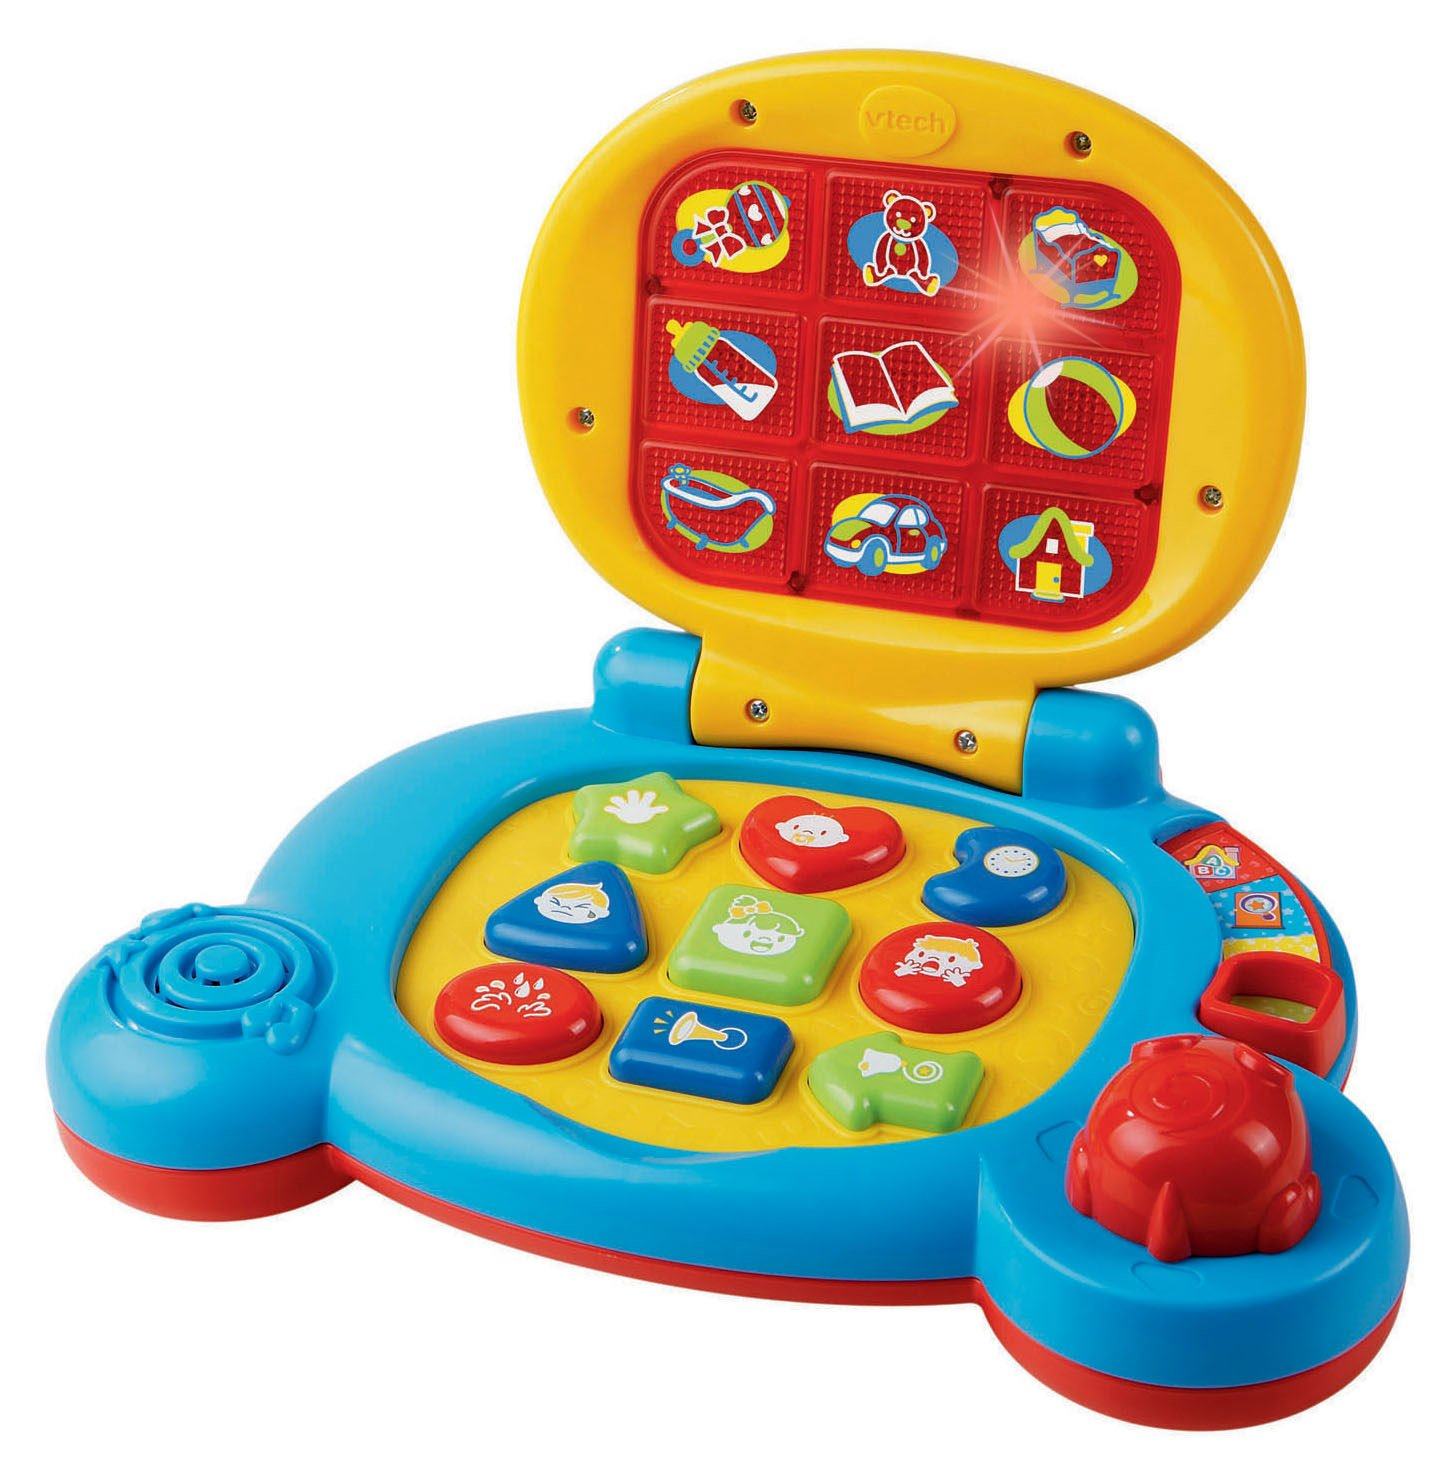 VTech Baby's Electronic Learning Toy Laptop